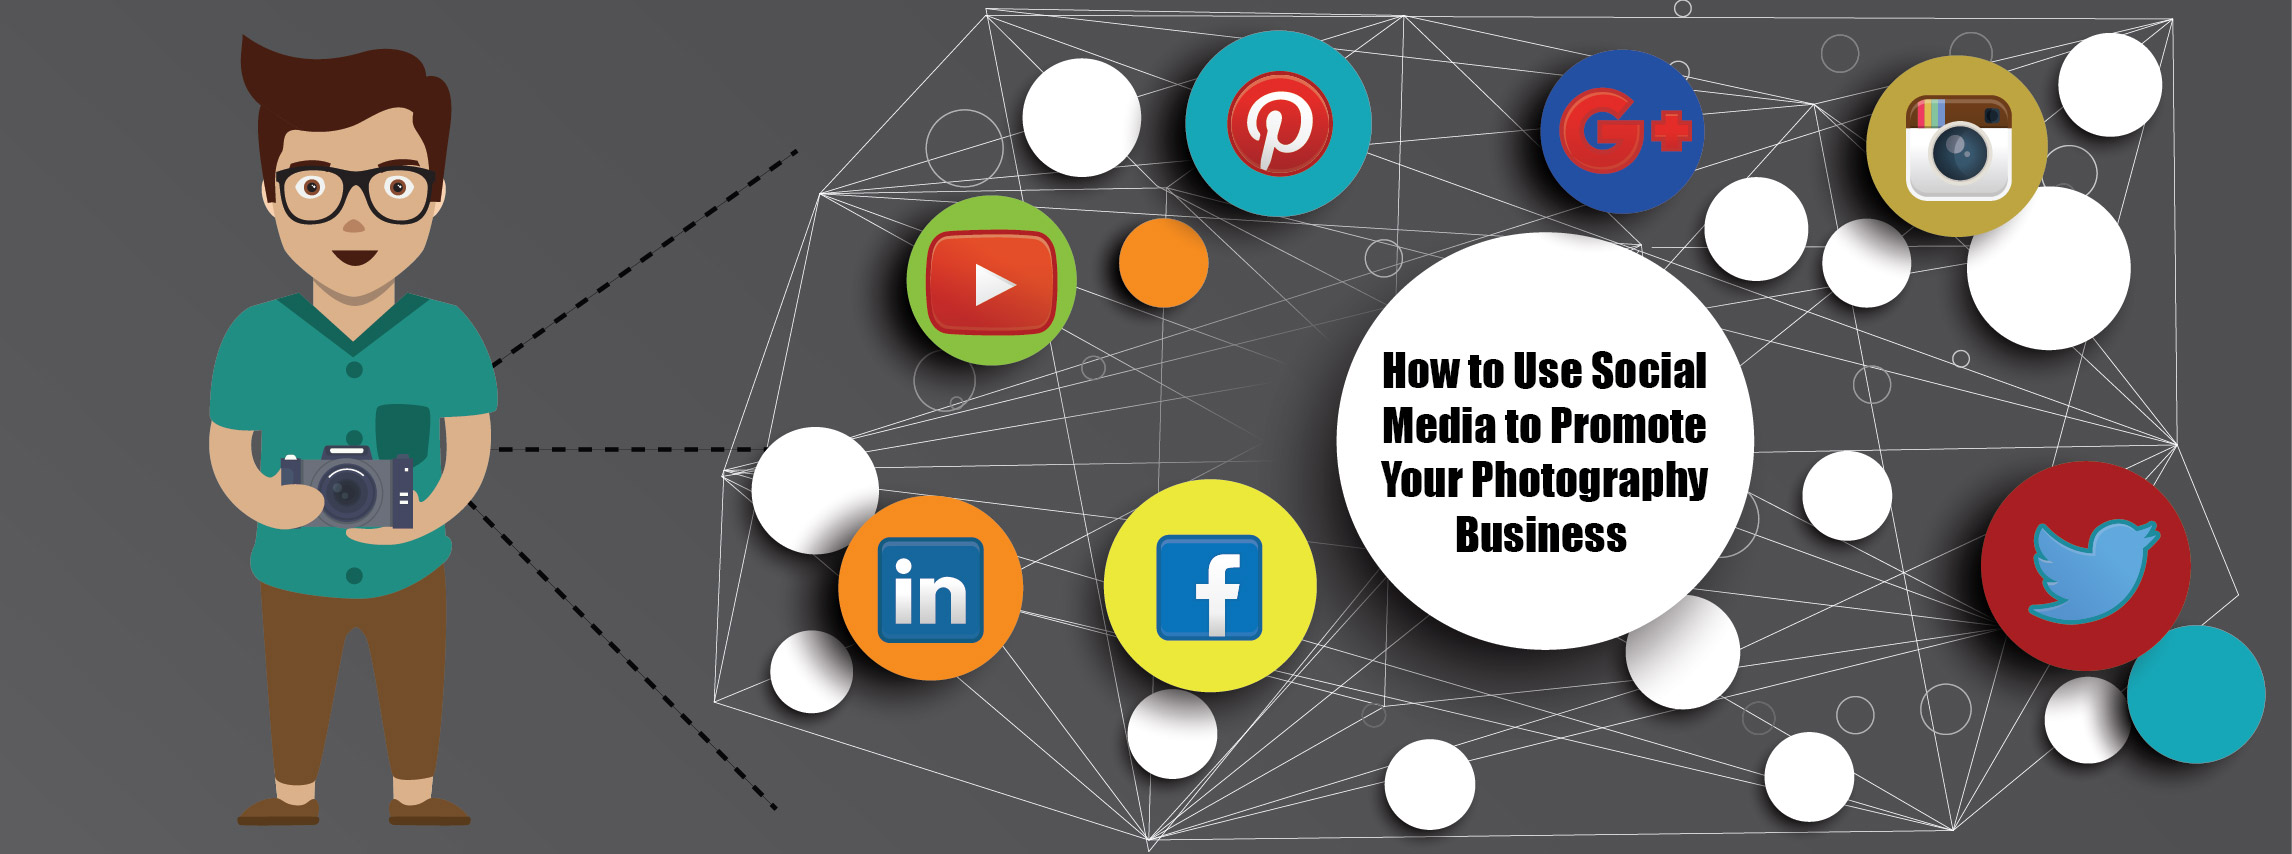 10 Social Media Marketing Strategies for Promoting Photography Business